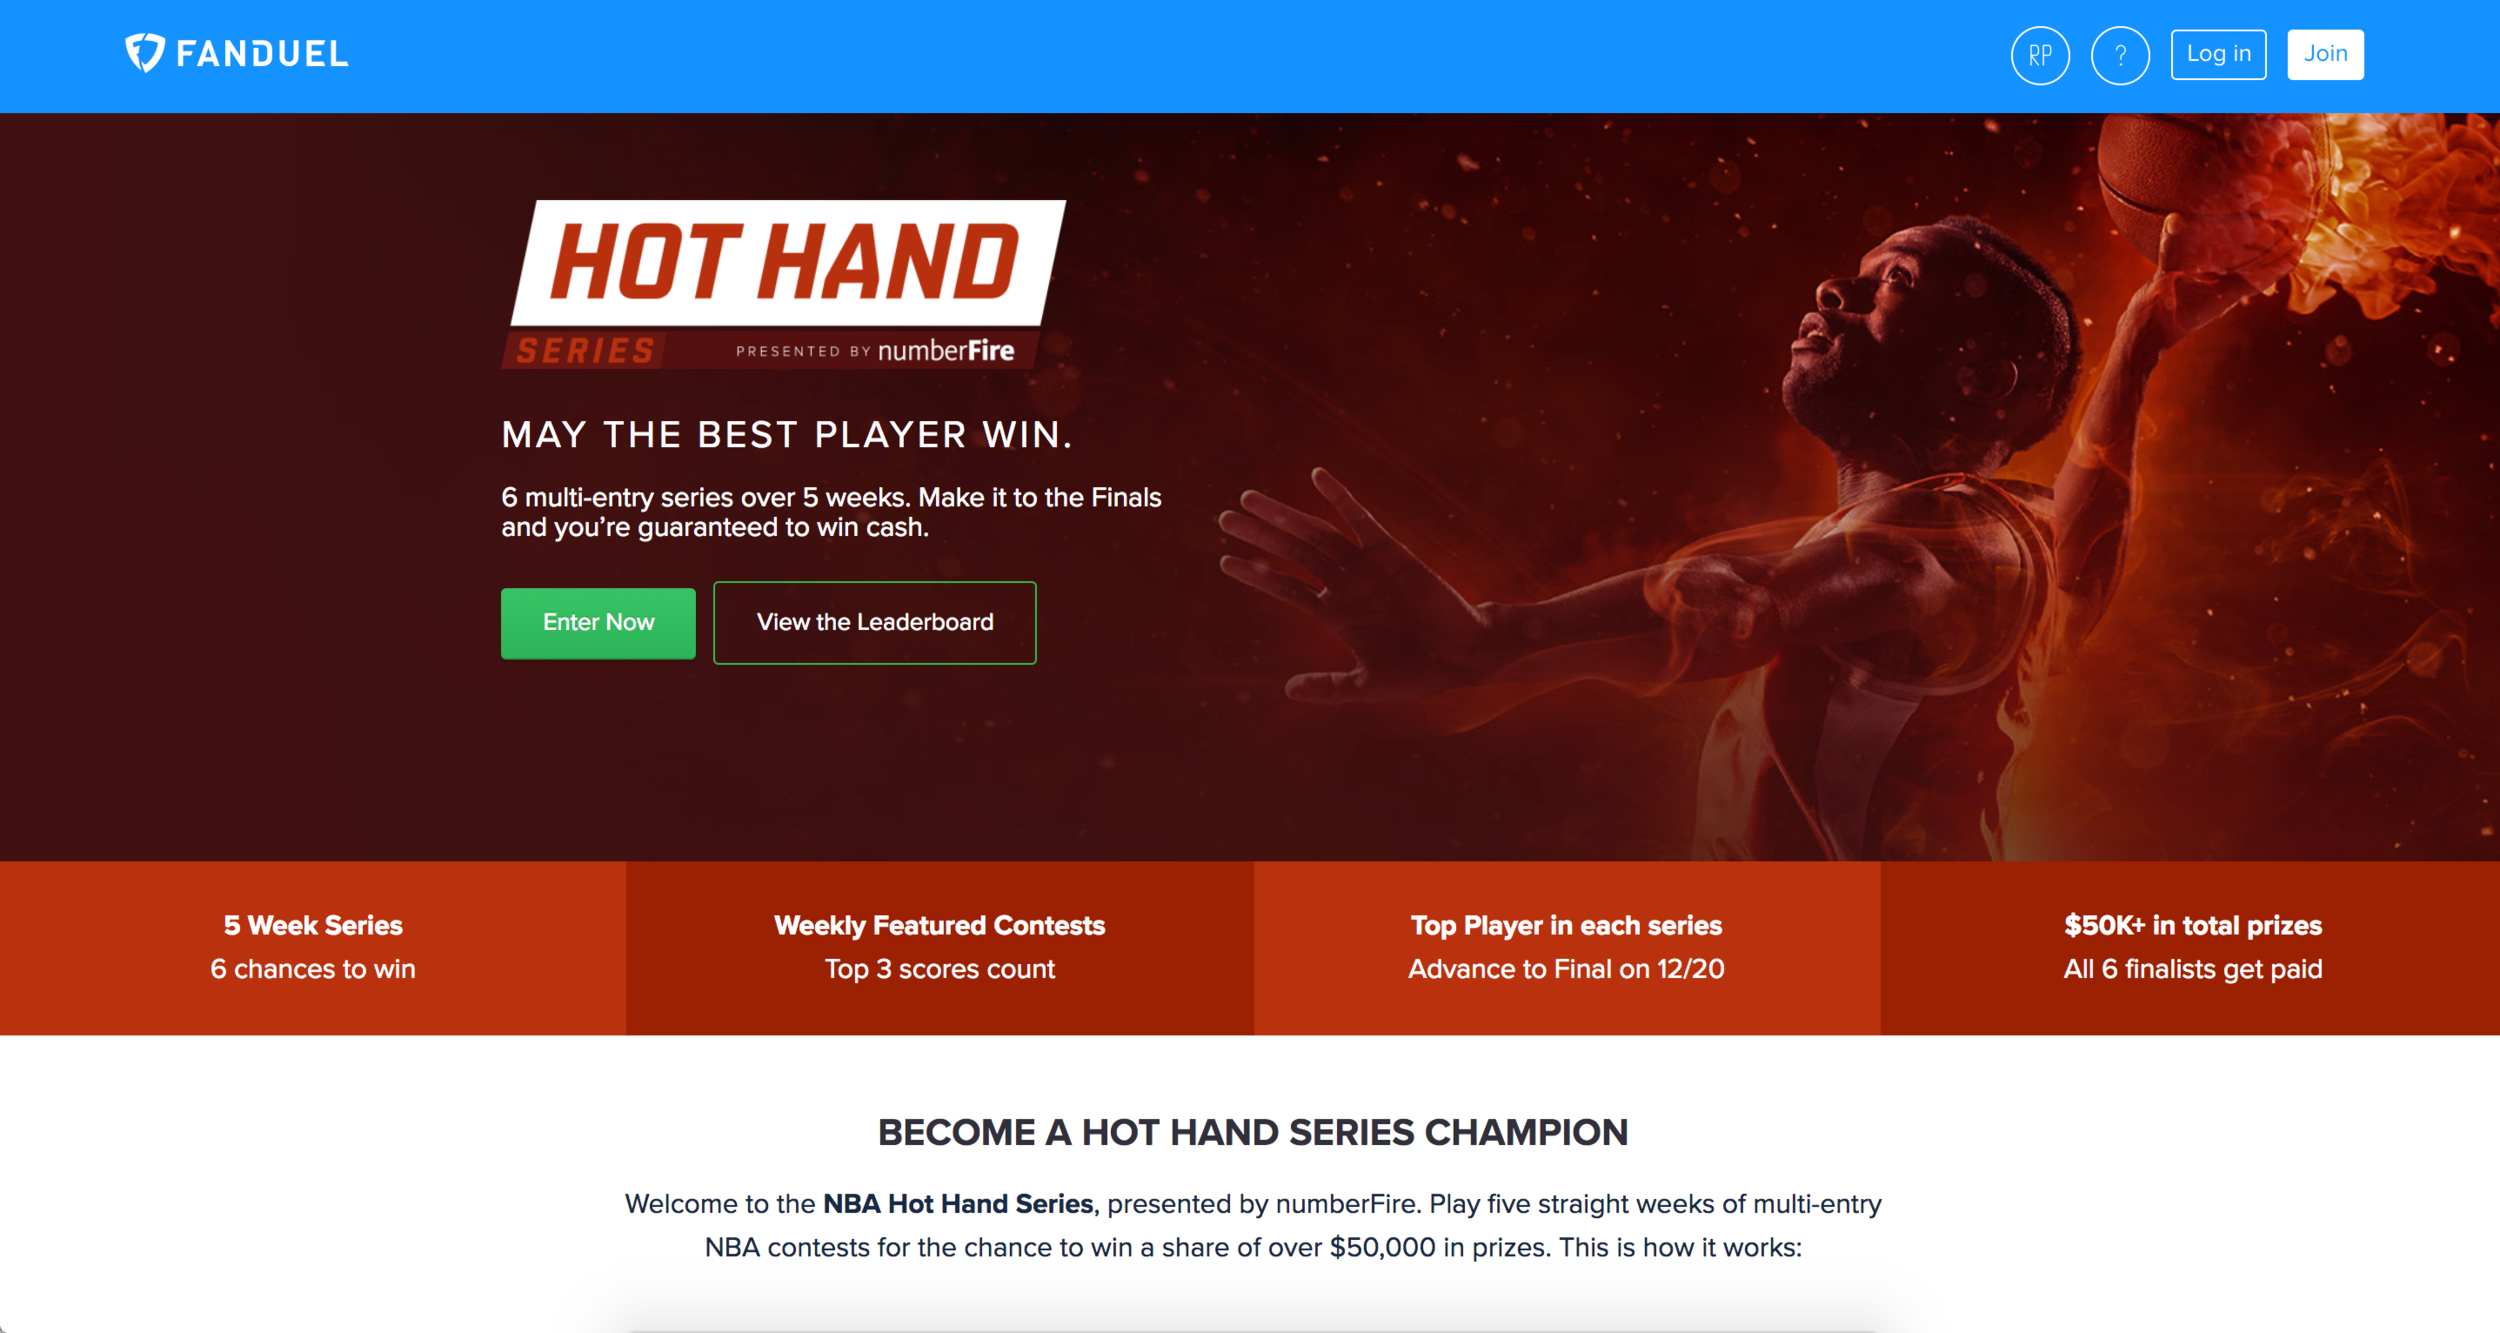 https://www.fanduel.com/nba-hot-hand-series